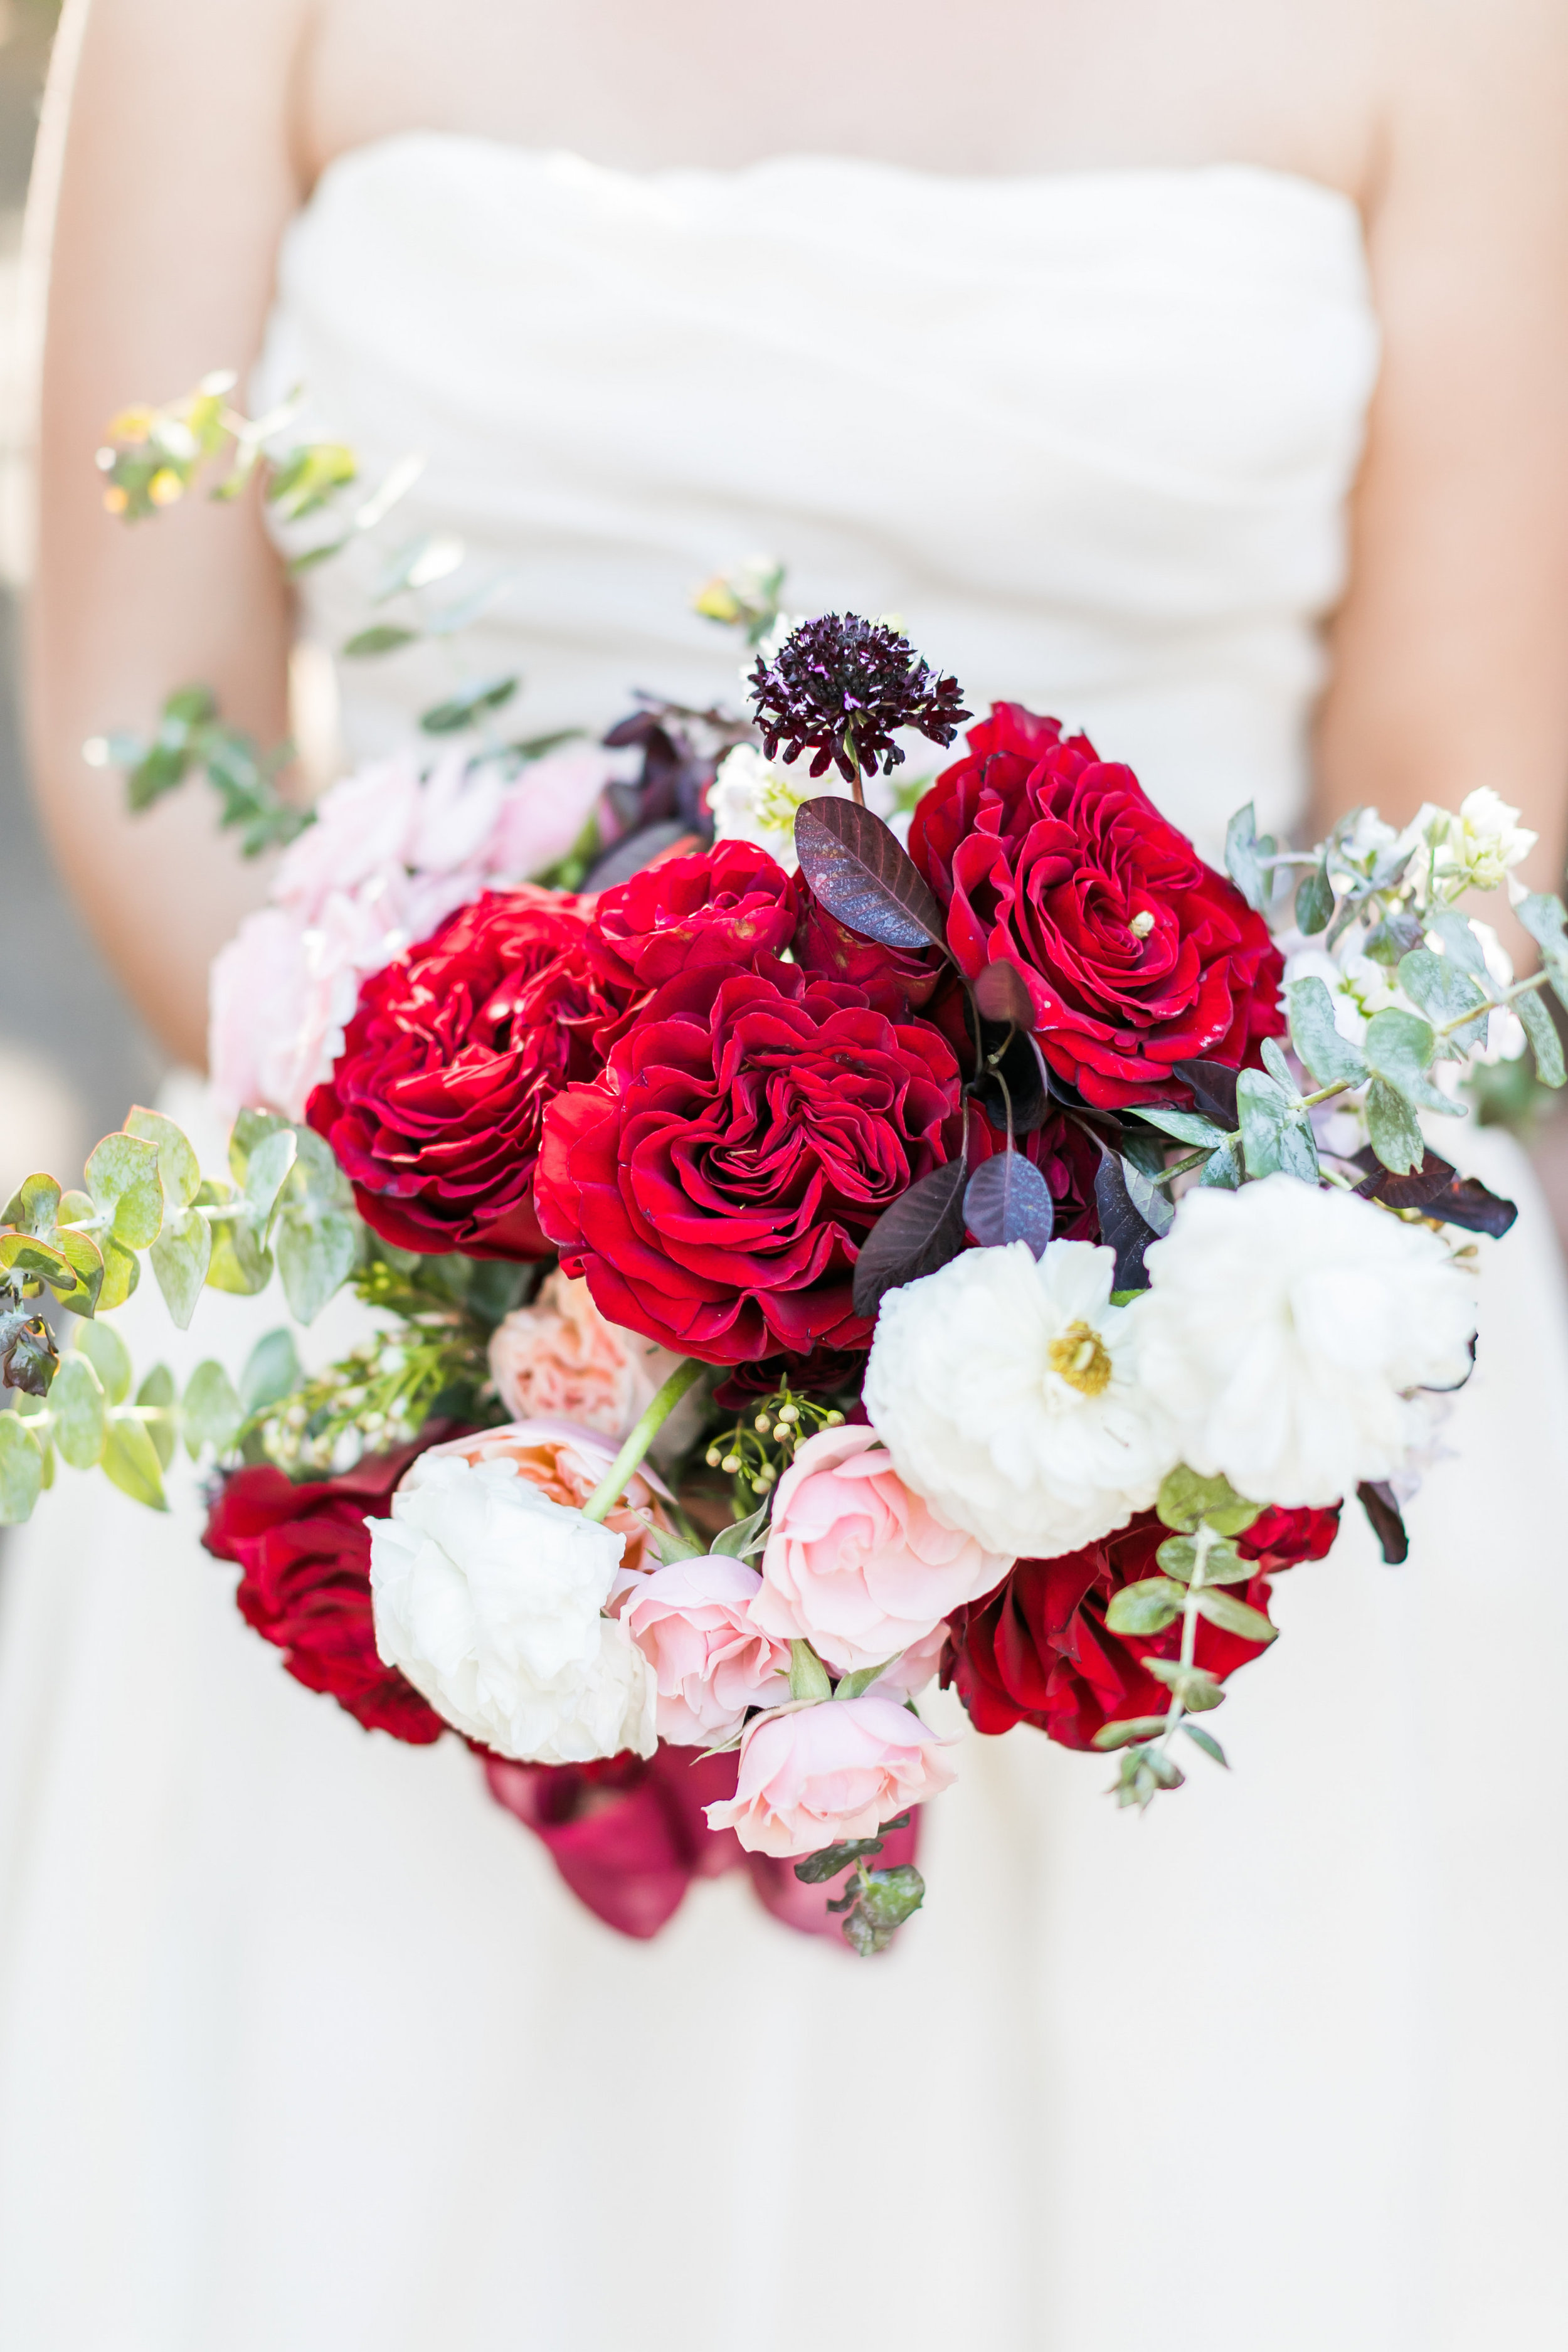 Burgundy, Red, and Blush Bridal Bouquet